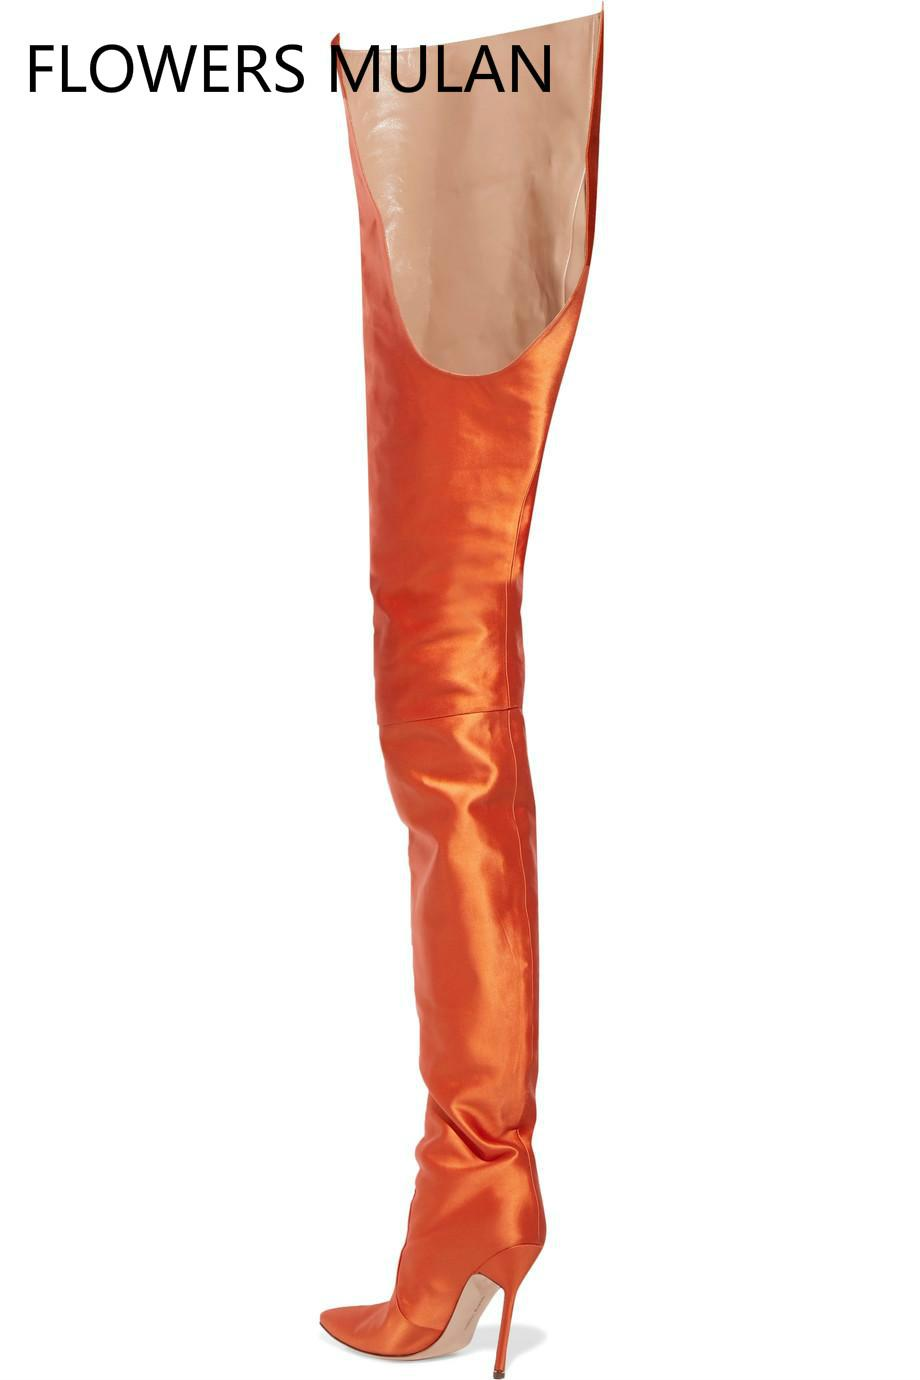 270df313b67 2018 Women Pointed Toe Over The Knee High Boots Ladies Slip On High Heel  Bright Orange Black Pink Purple Satin Waist High Boots 2017 Shoe Boots Over  Knee ...